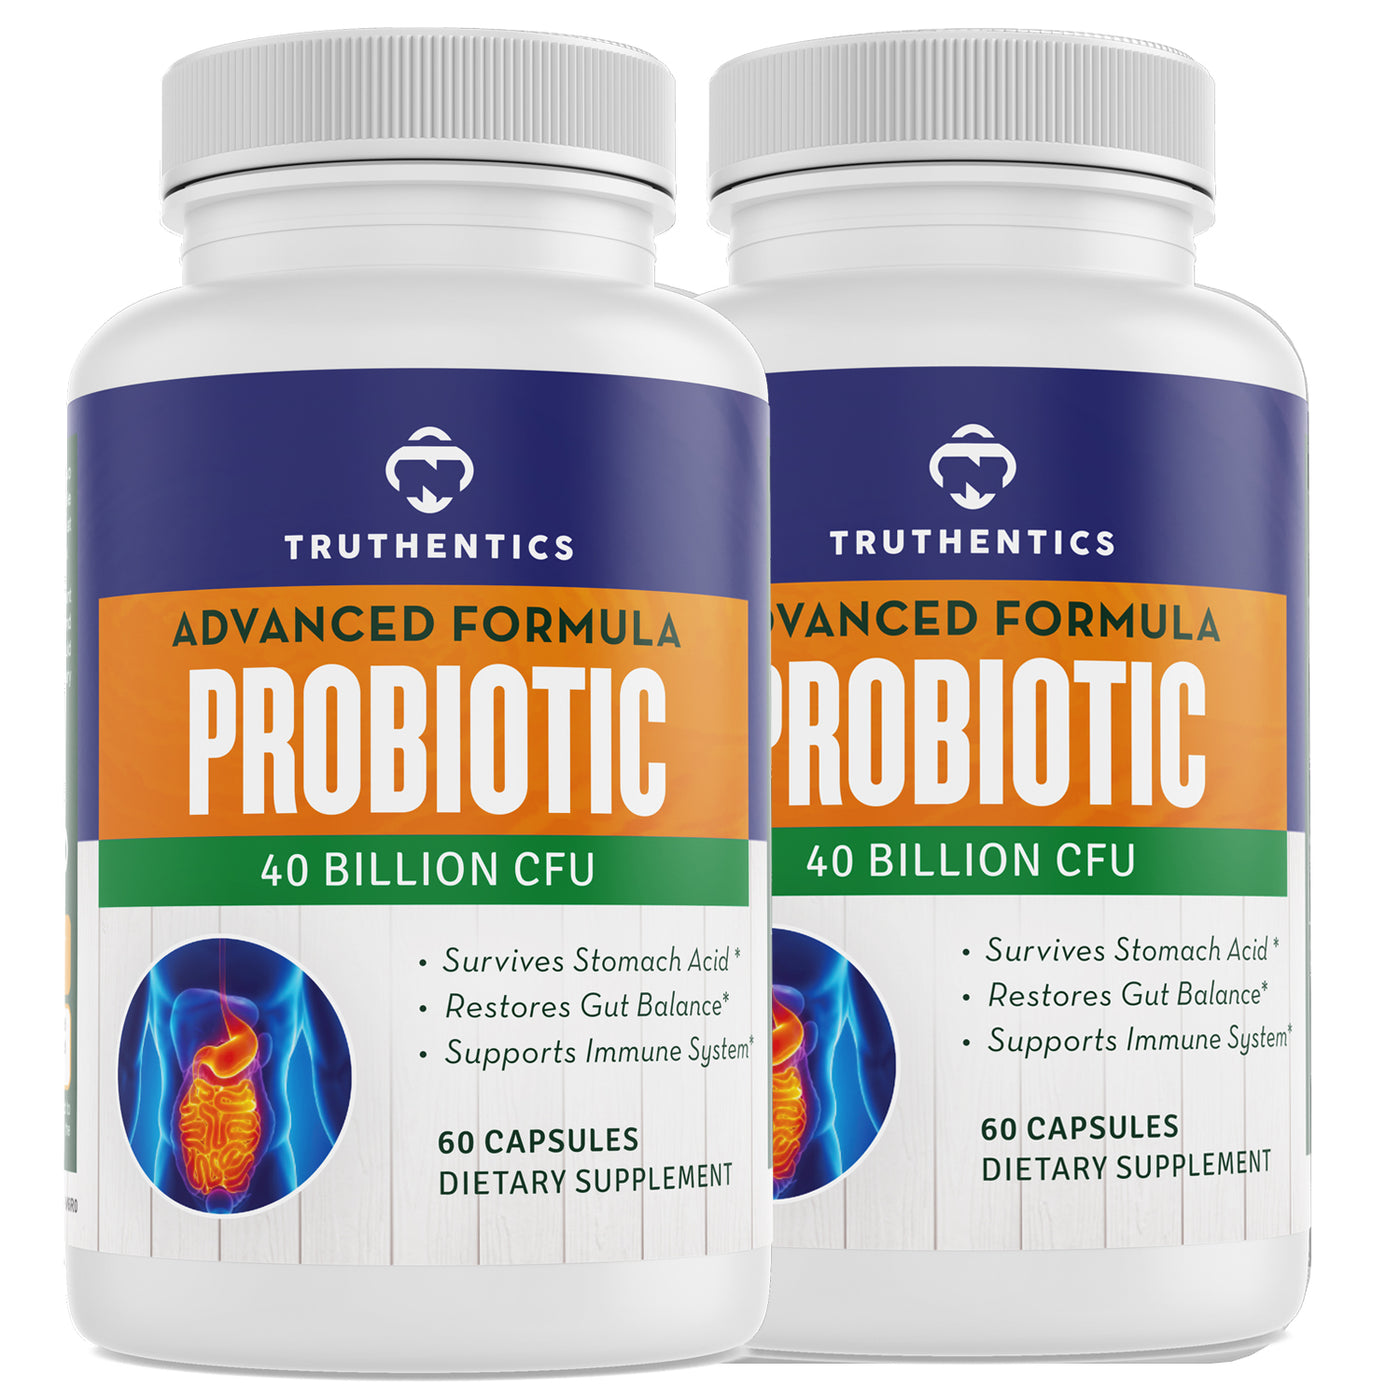 Advanced Formula Probiotic